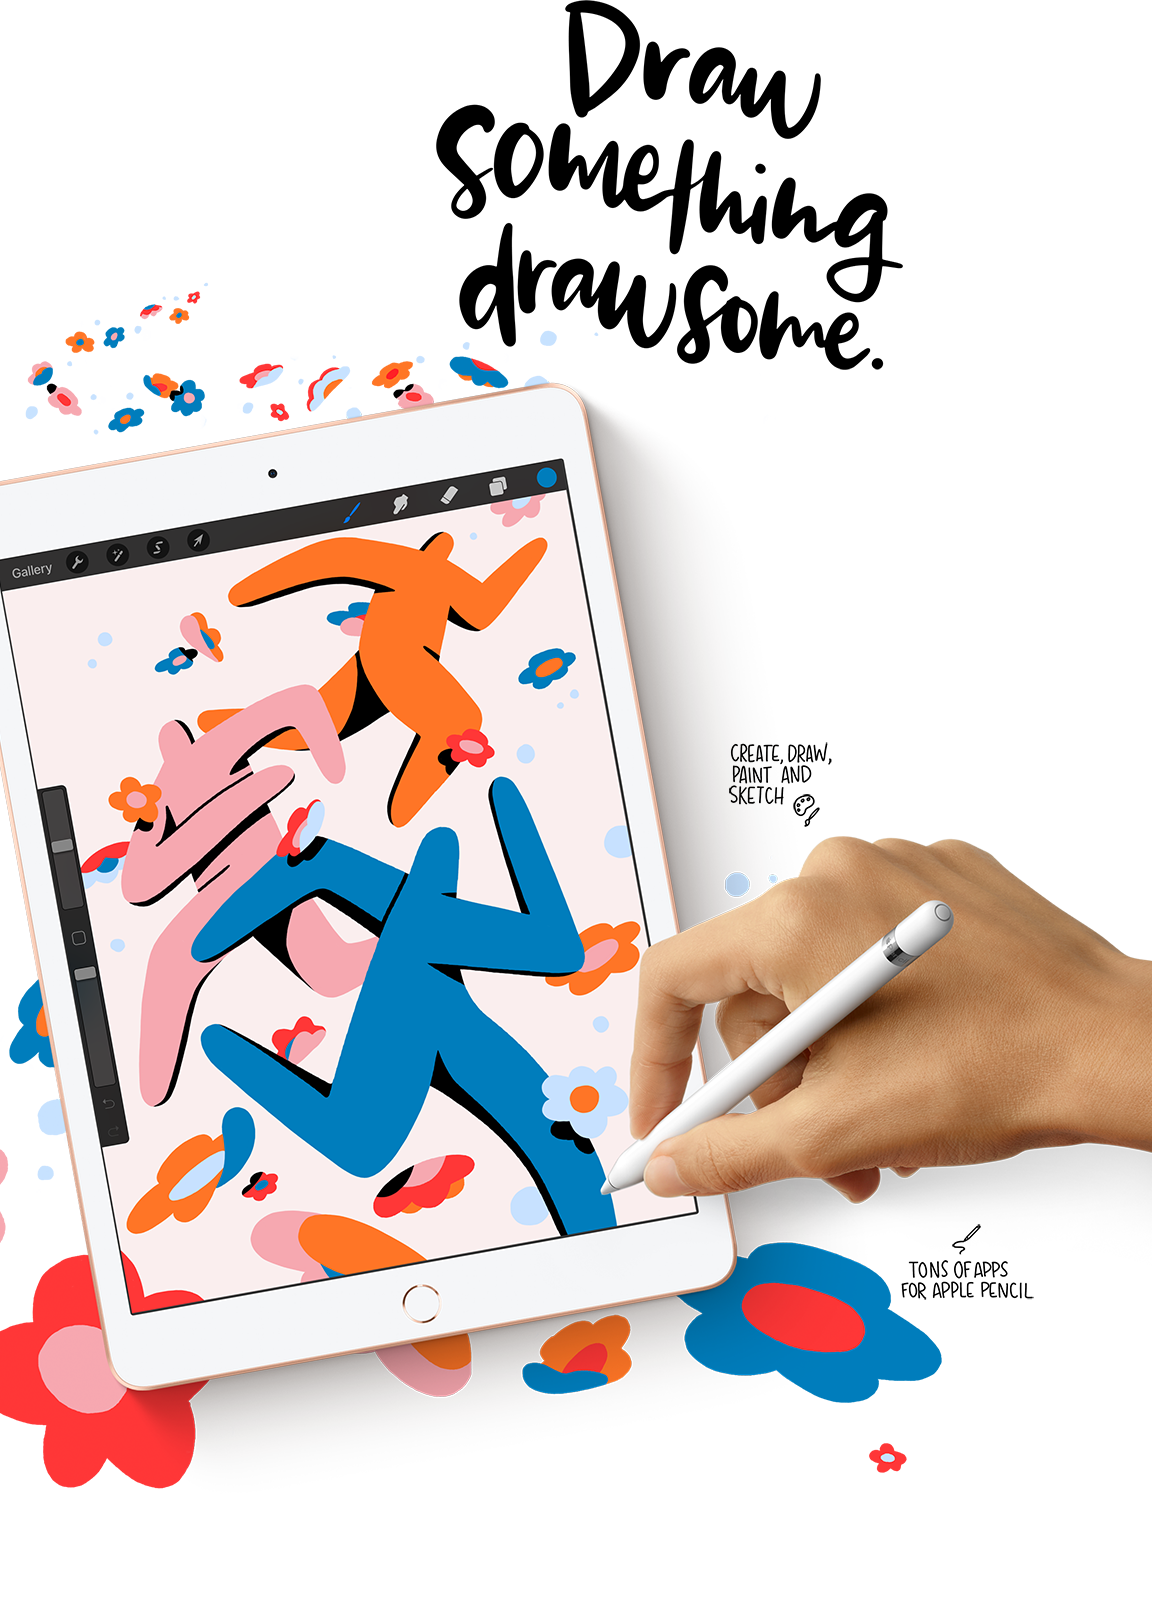 Get the most out of drawing on your iPad 8 with an Apple Pencil.